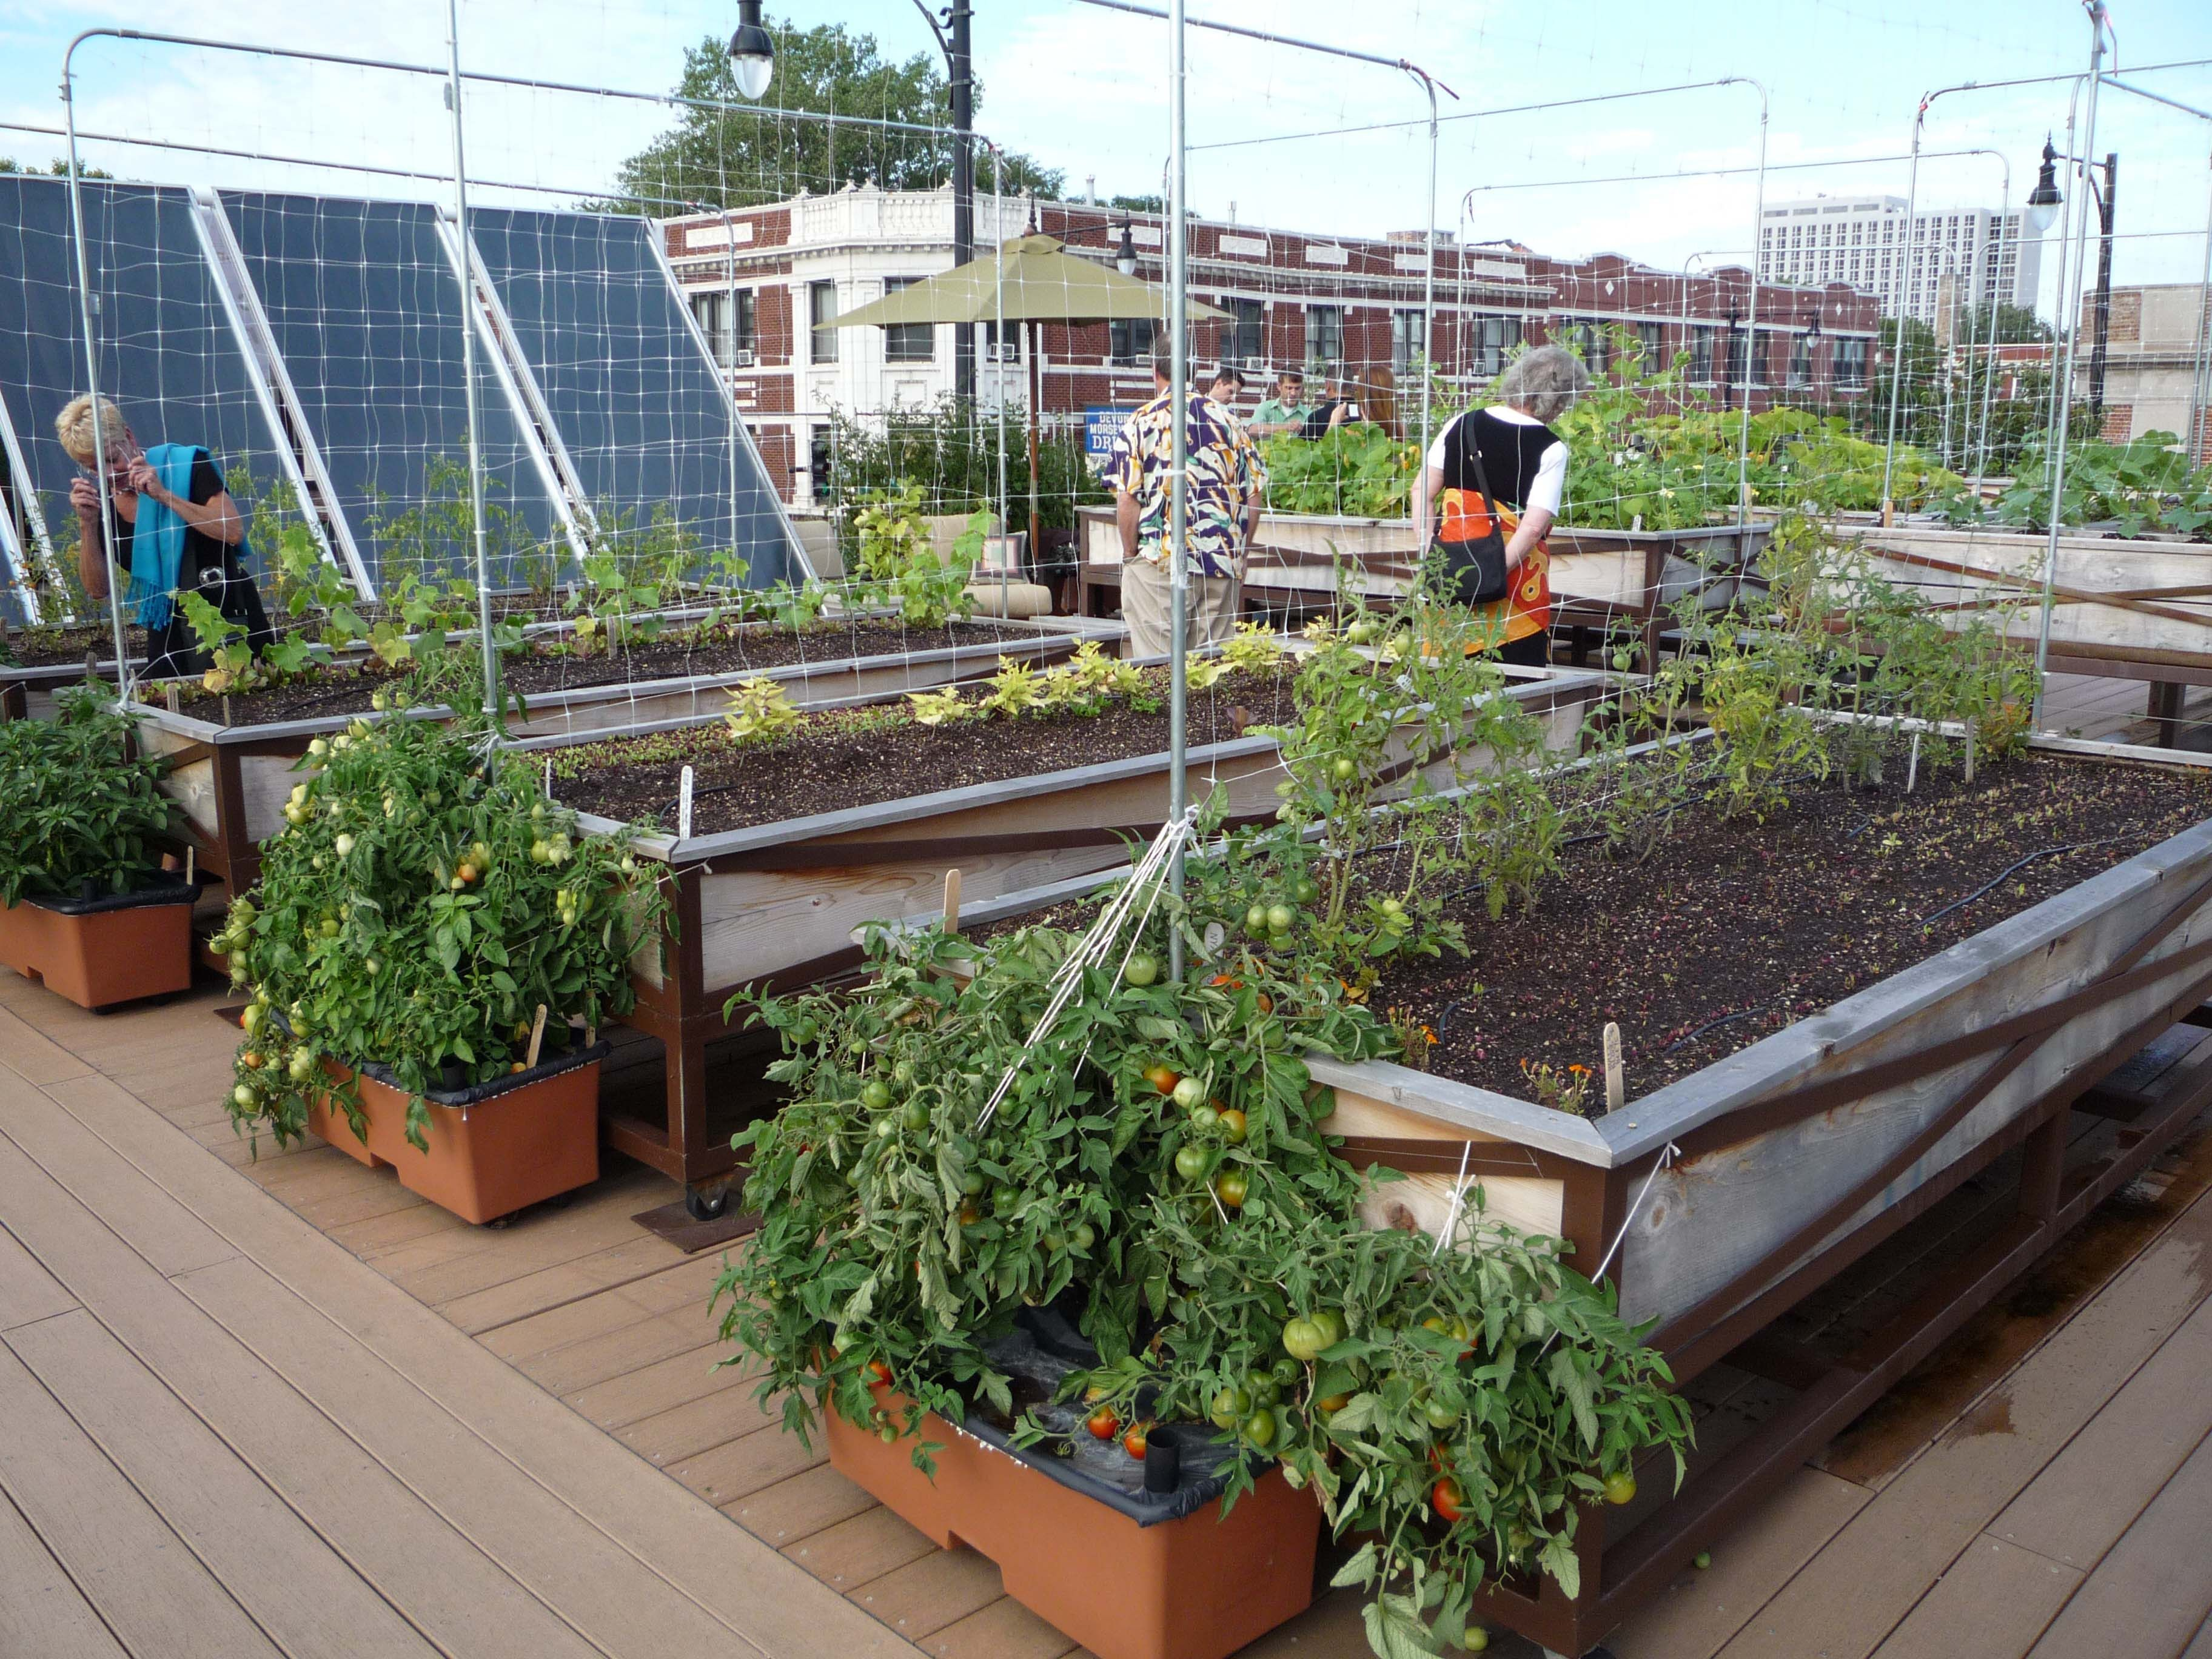 49 Simple Rooftop Garden Ideas (With images) | Garden ...